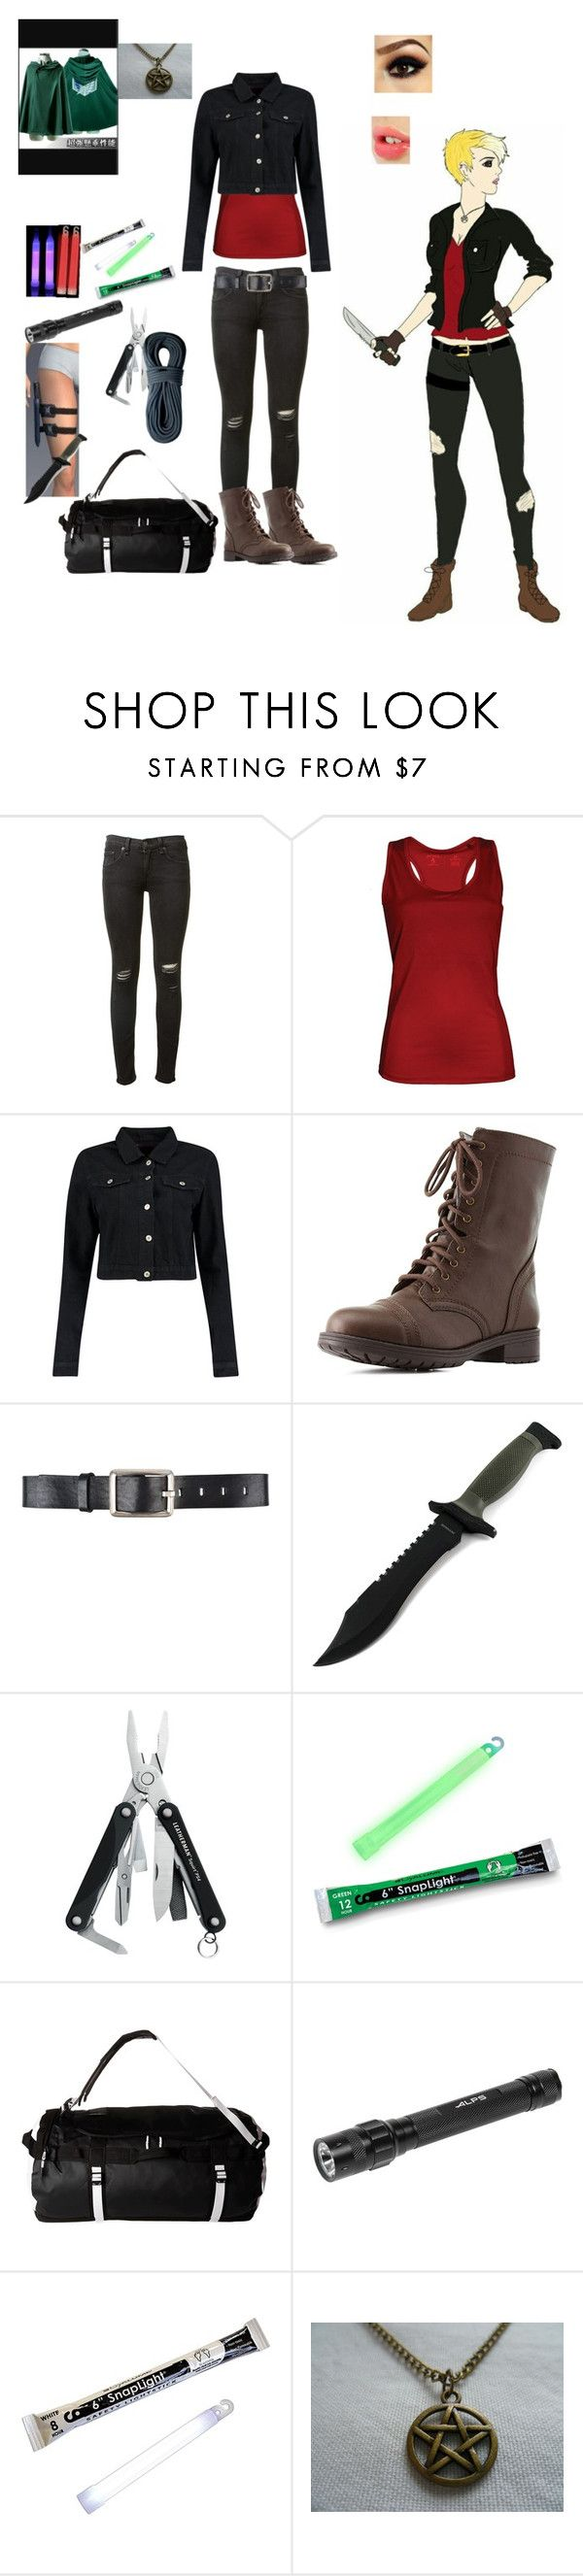 """""""Untitled #50"""" by jack-loves-cake on Polyvore featuring rag & bone, Antigua, Boohoo, Charlotte Russe, Belstaff, Leatherman, SnapLight, The North Face, ALPS Mountaineering and Charlotte Tilbury"""